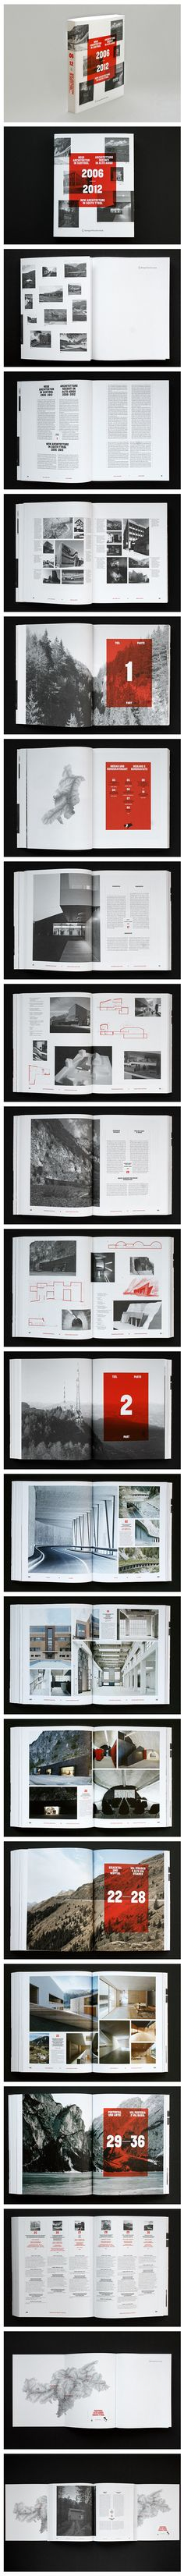 Book, Layout, Grid, Typography, New Architecture in South Tyrol 2006–2012, by ONLAB (Berlin)